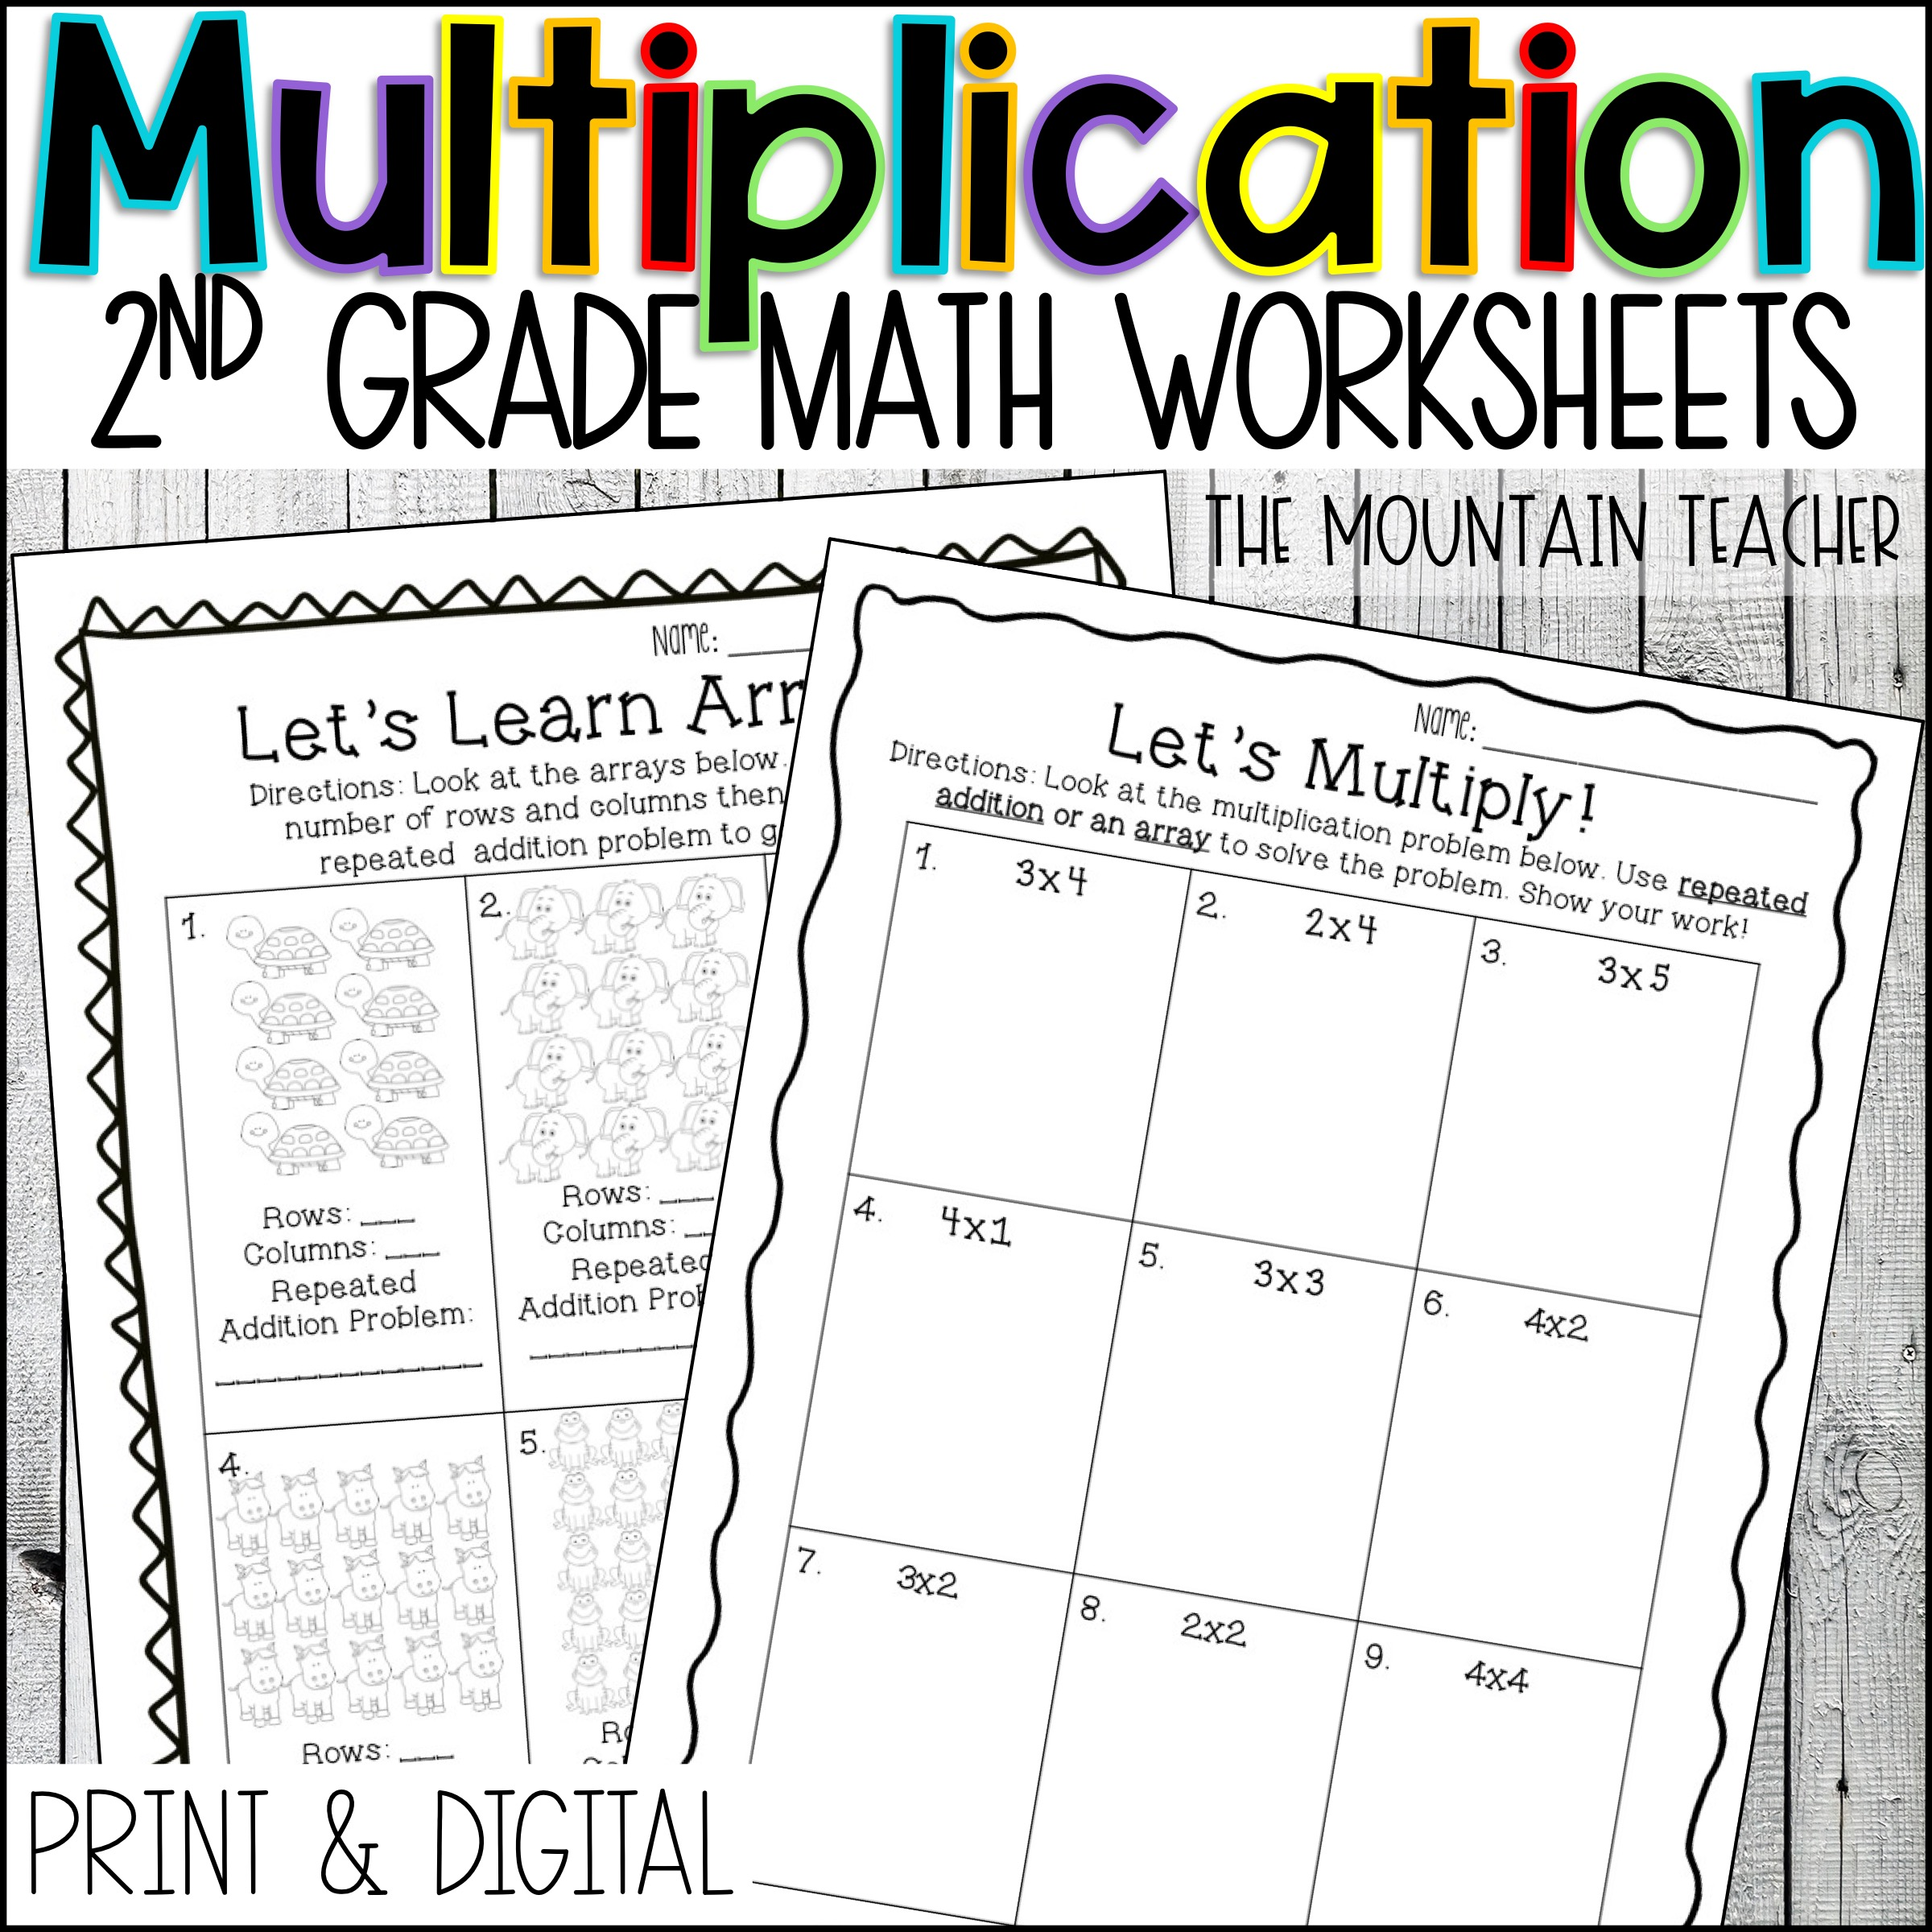 Multiplication Worksheets for 2nd Grade By The Mountain Teacher